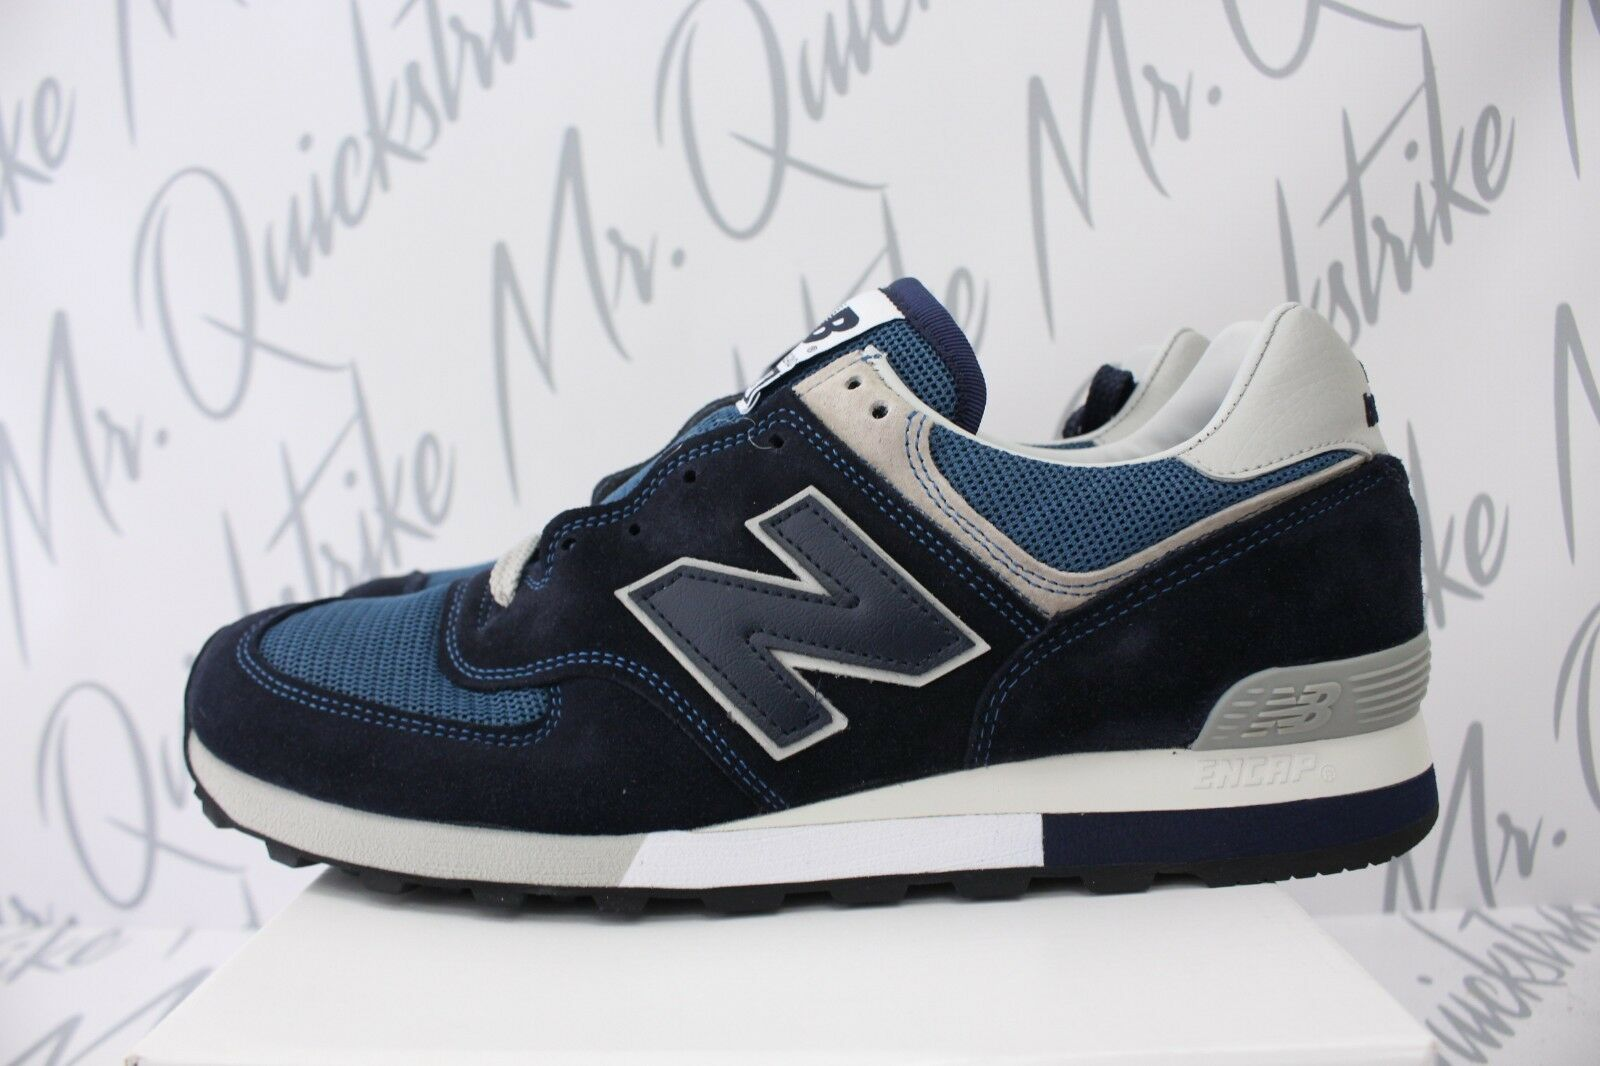 NEW BALANCE 576 MADE IN UK SZ 9 NAVY GREY OM576OGN